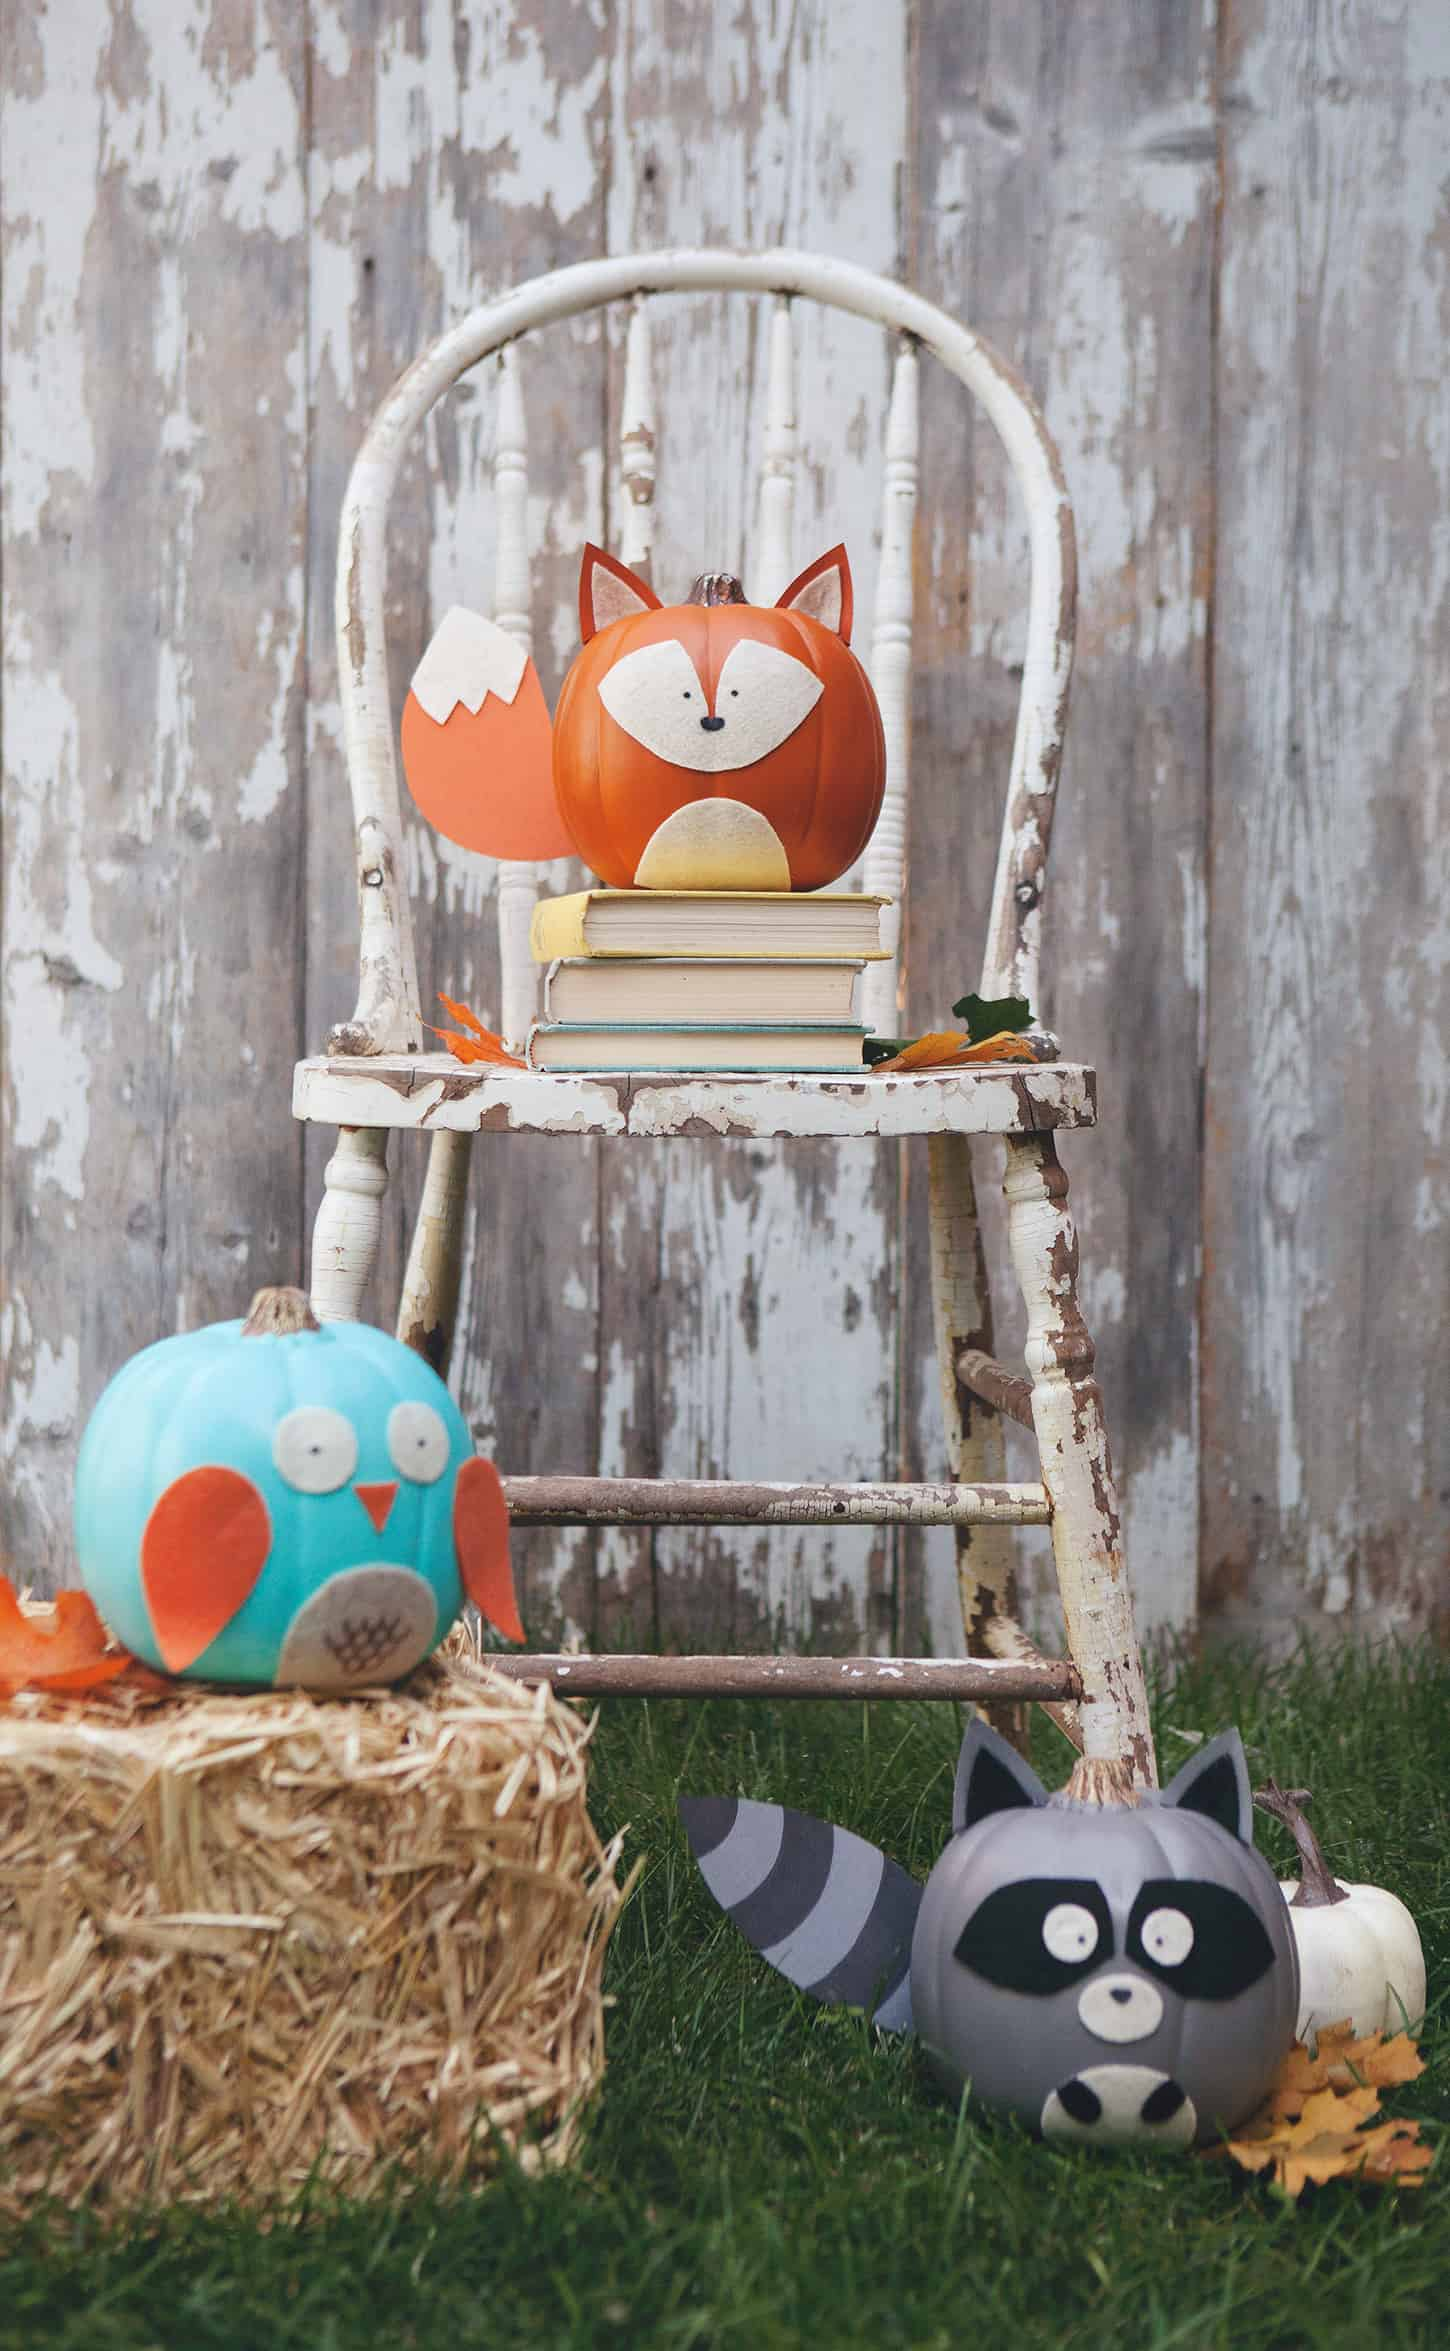 Cute woodland animal pumpkins